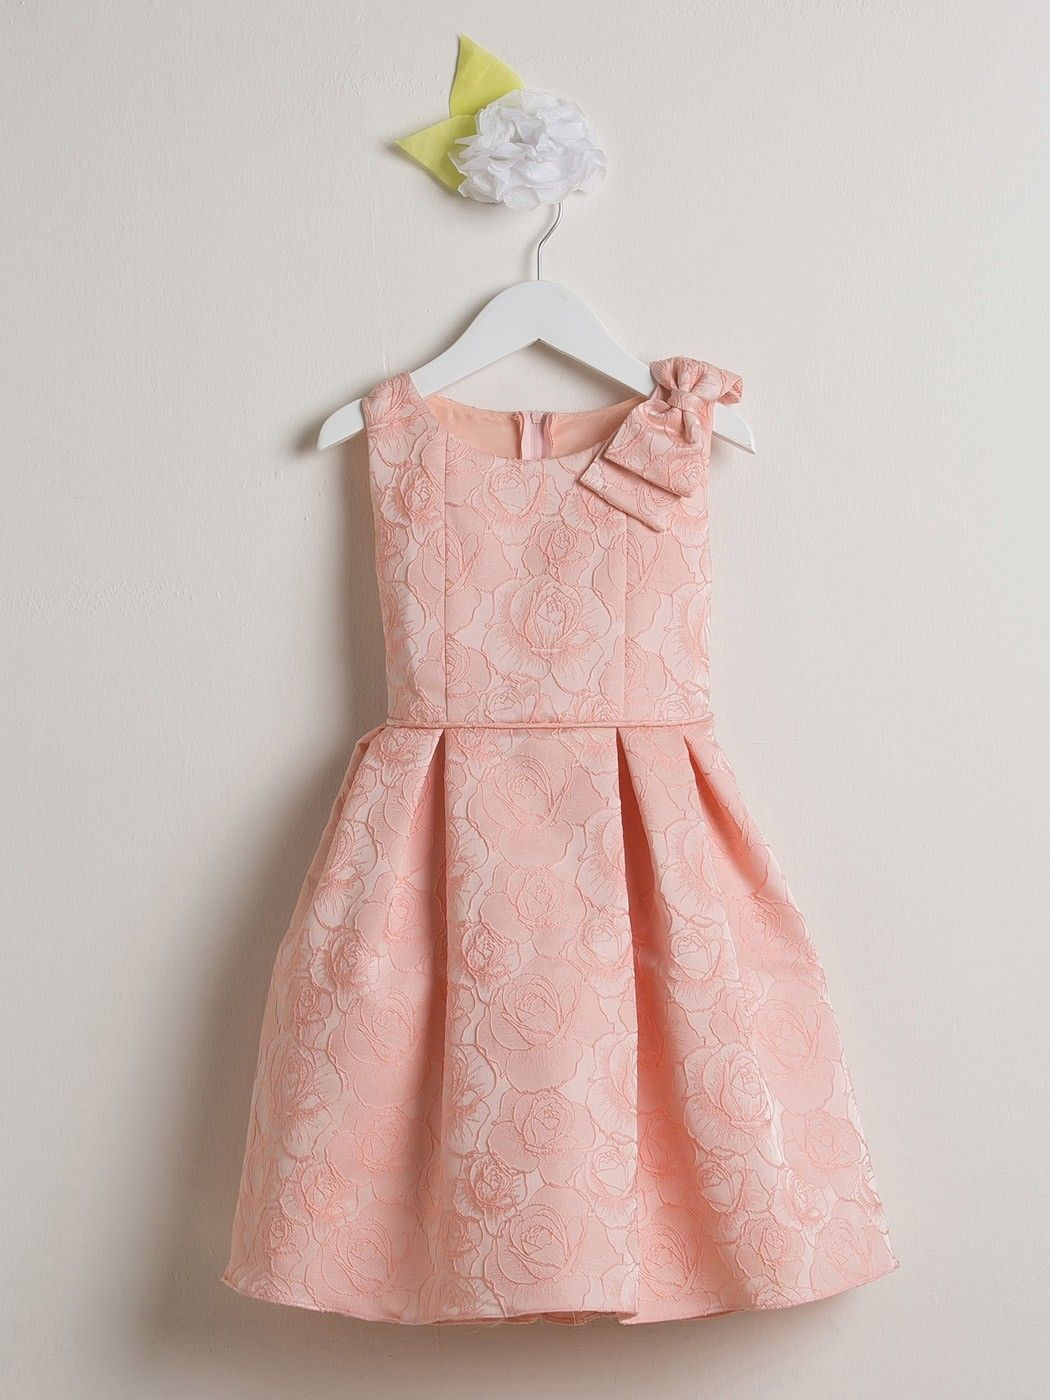 Rose Pink Jacquard Rose Print Flower Girl Dress Available In Sizes